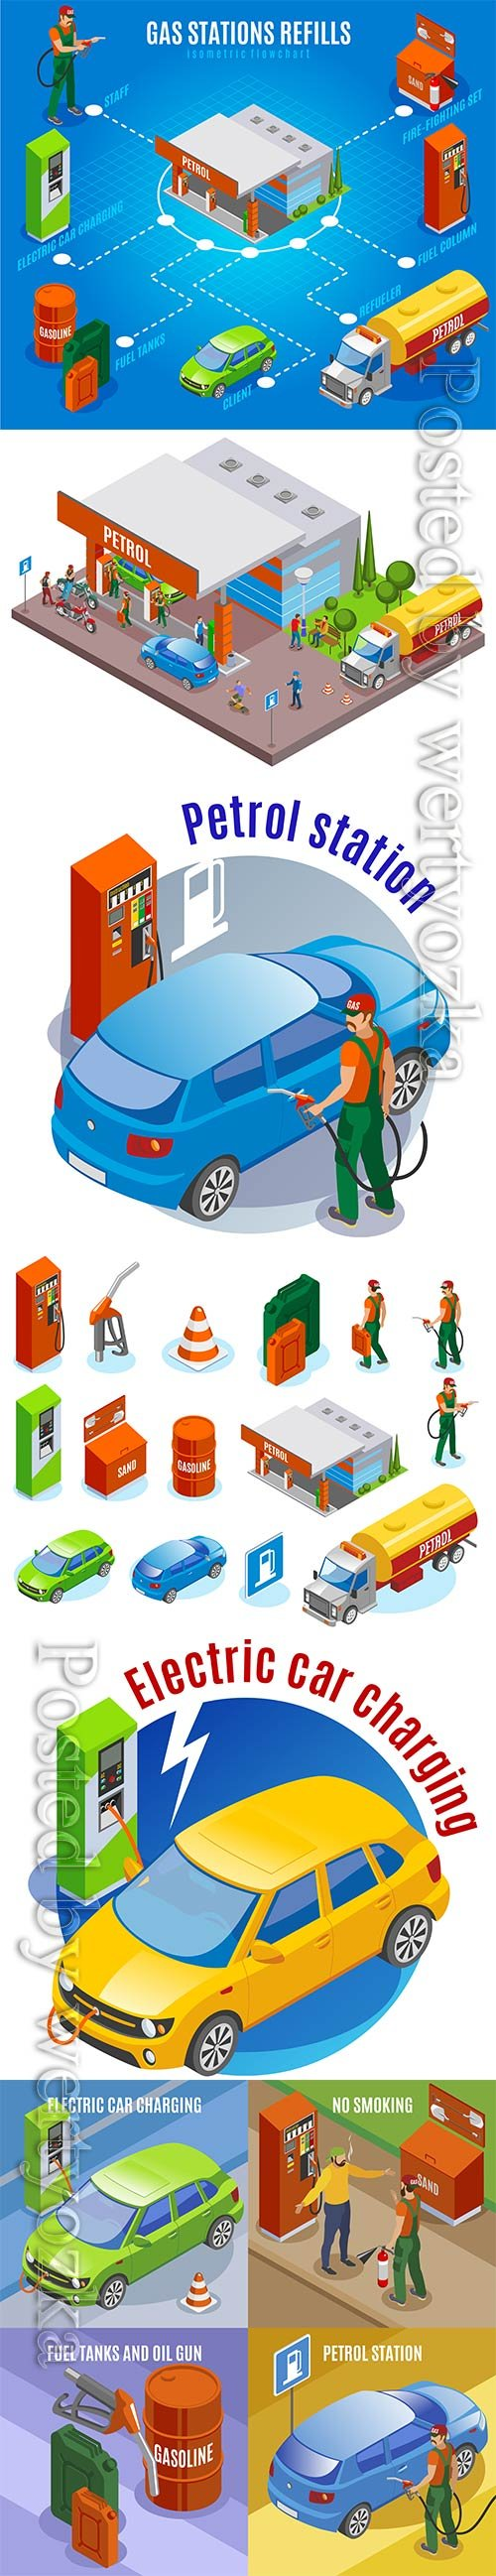 Refueling refills the isometric concept with compositions of automobile images of fuel tanks